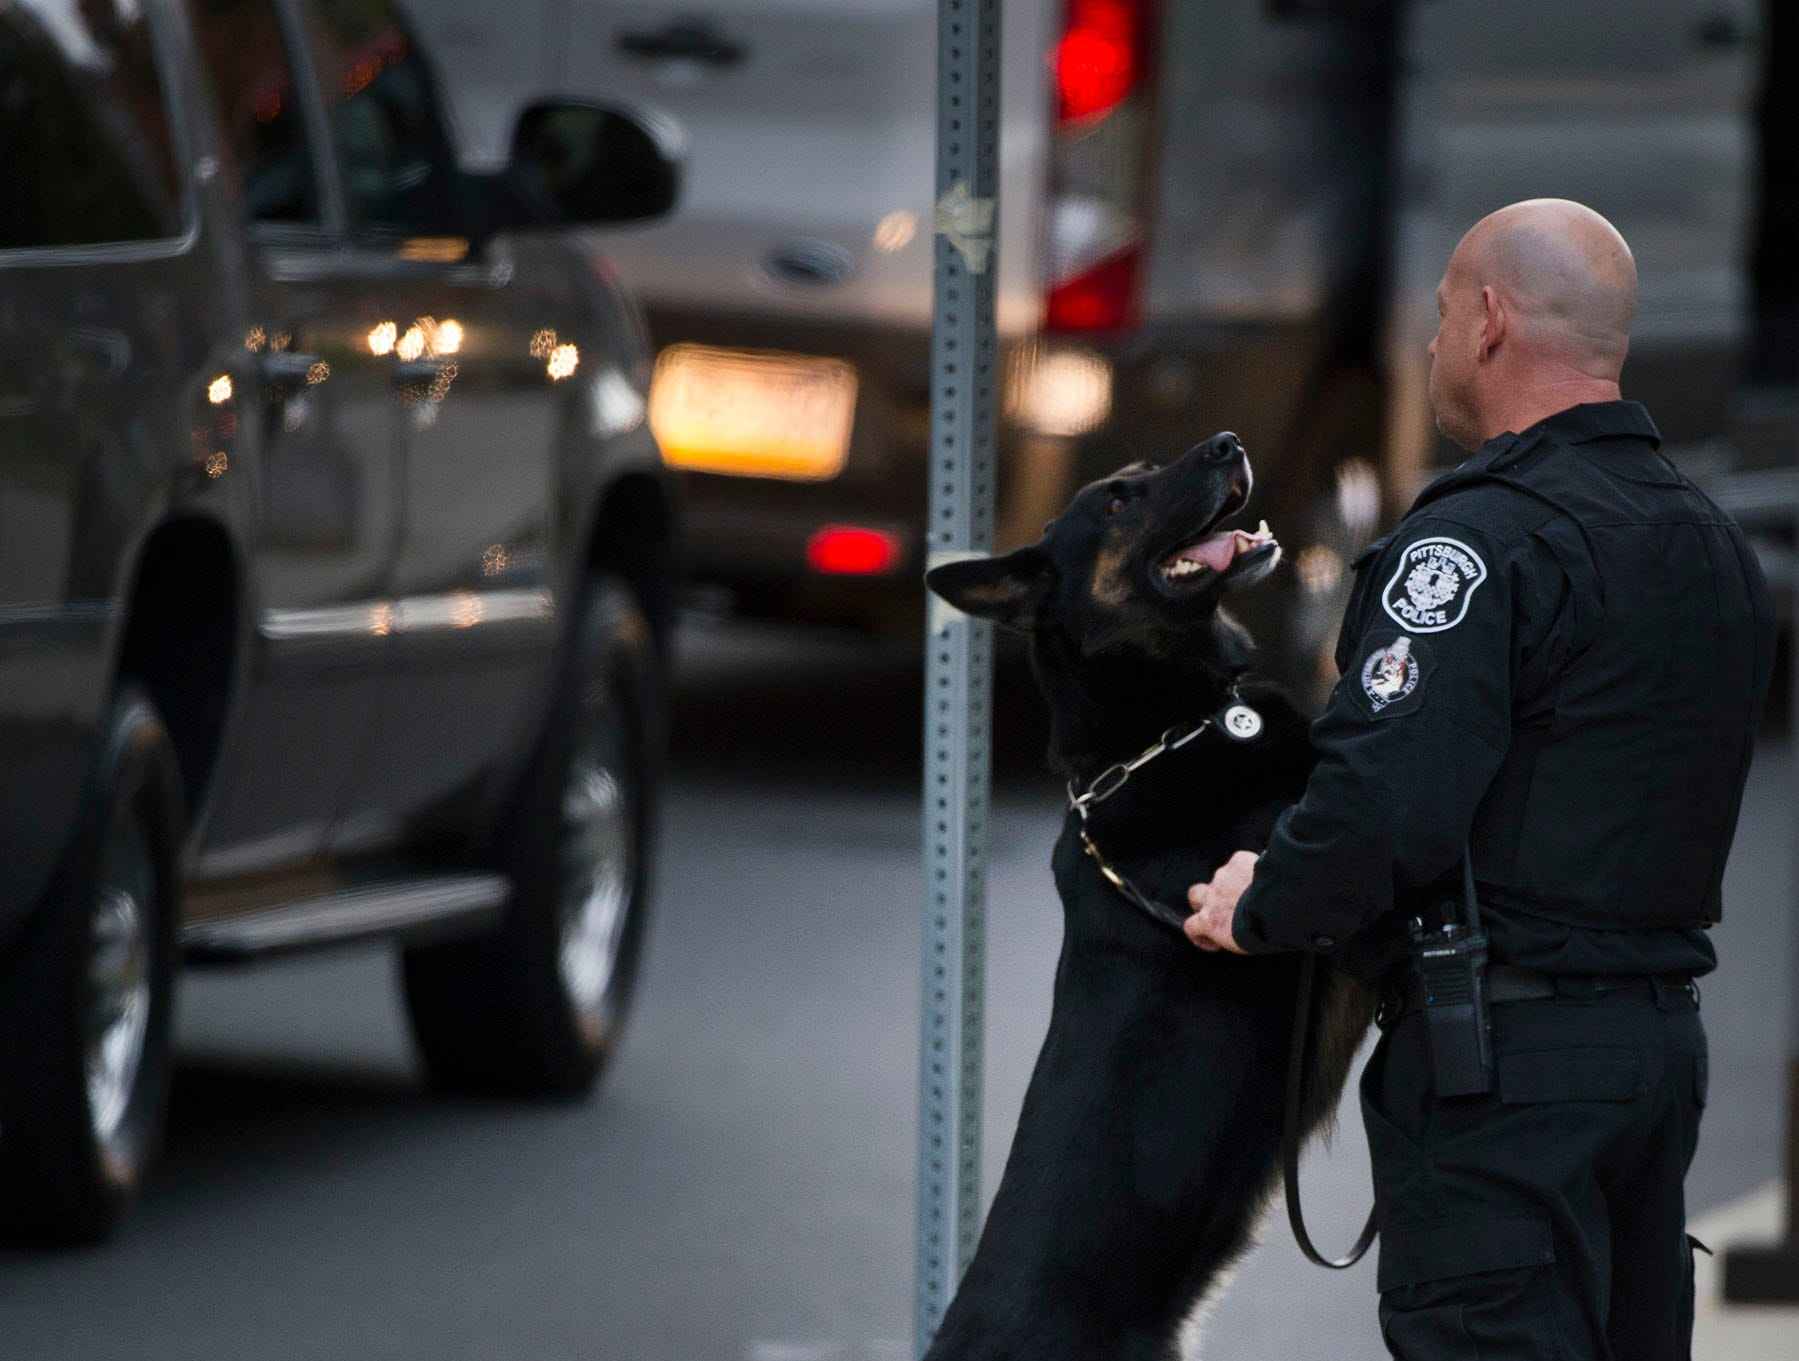 A Pittsburgh police dog is restless with his trainer as they wait for President Trump at UPMC, Tuesday, October 30, 2018. A gunman entered the Tree of Life Congregation Synagogue in the Squirrel Hill neighborhood of Pittsburgh and opened fire on the congregants and engaged police, Saturday morning, according to officials. (Markell DeLoatch, Public Opinion/via USA Today Network)